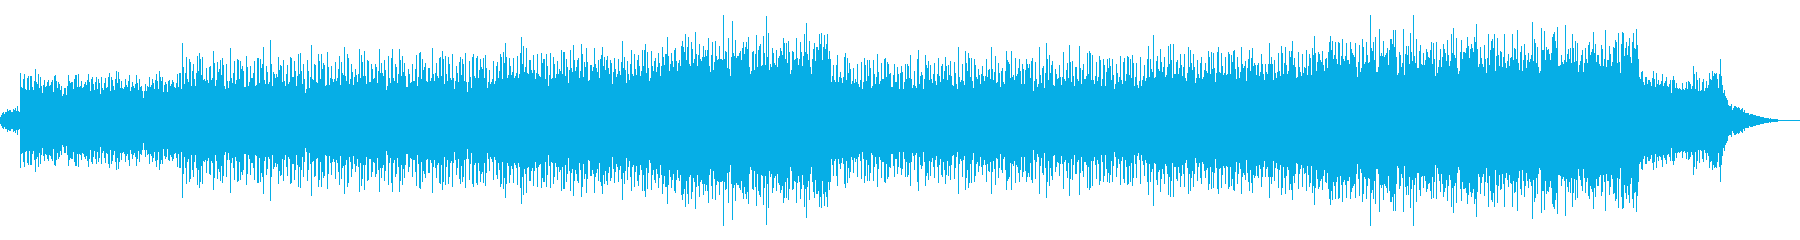 Brave orchestra simple's reproduced waveform